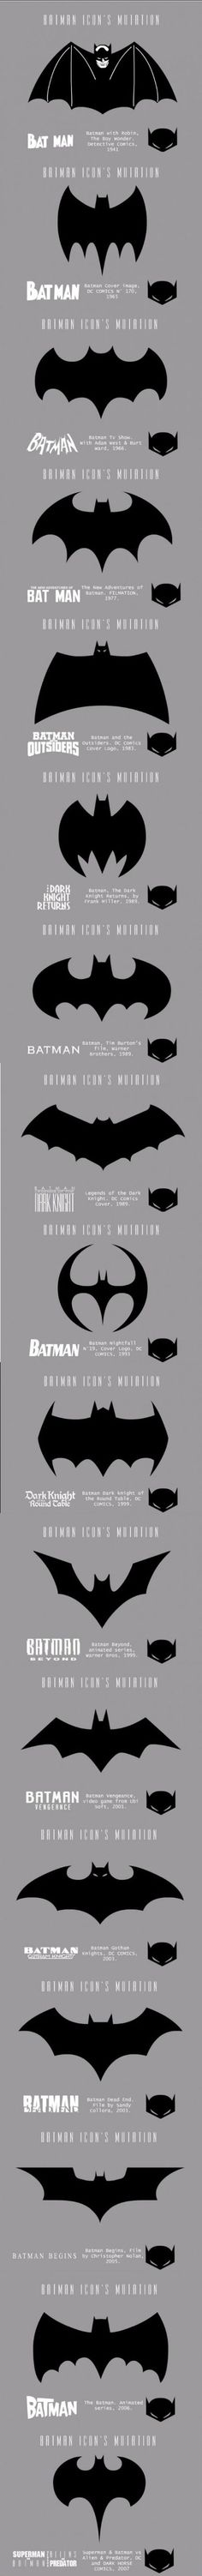 The Evolution Of The Batsymbol